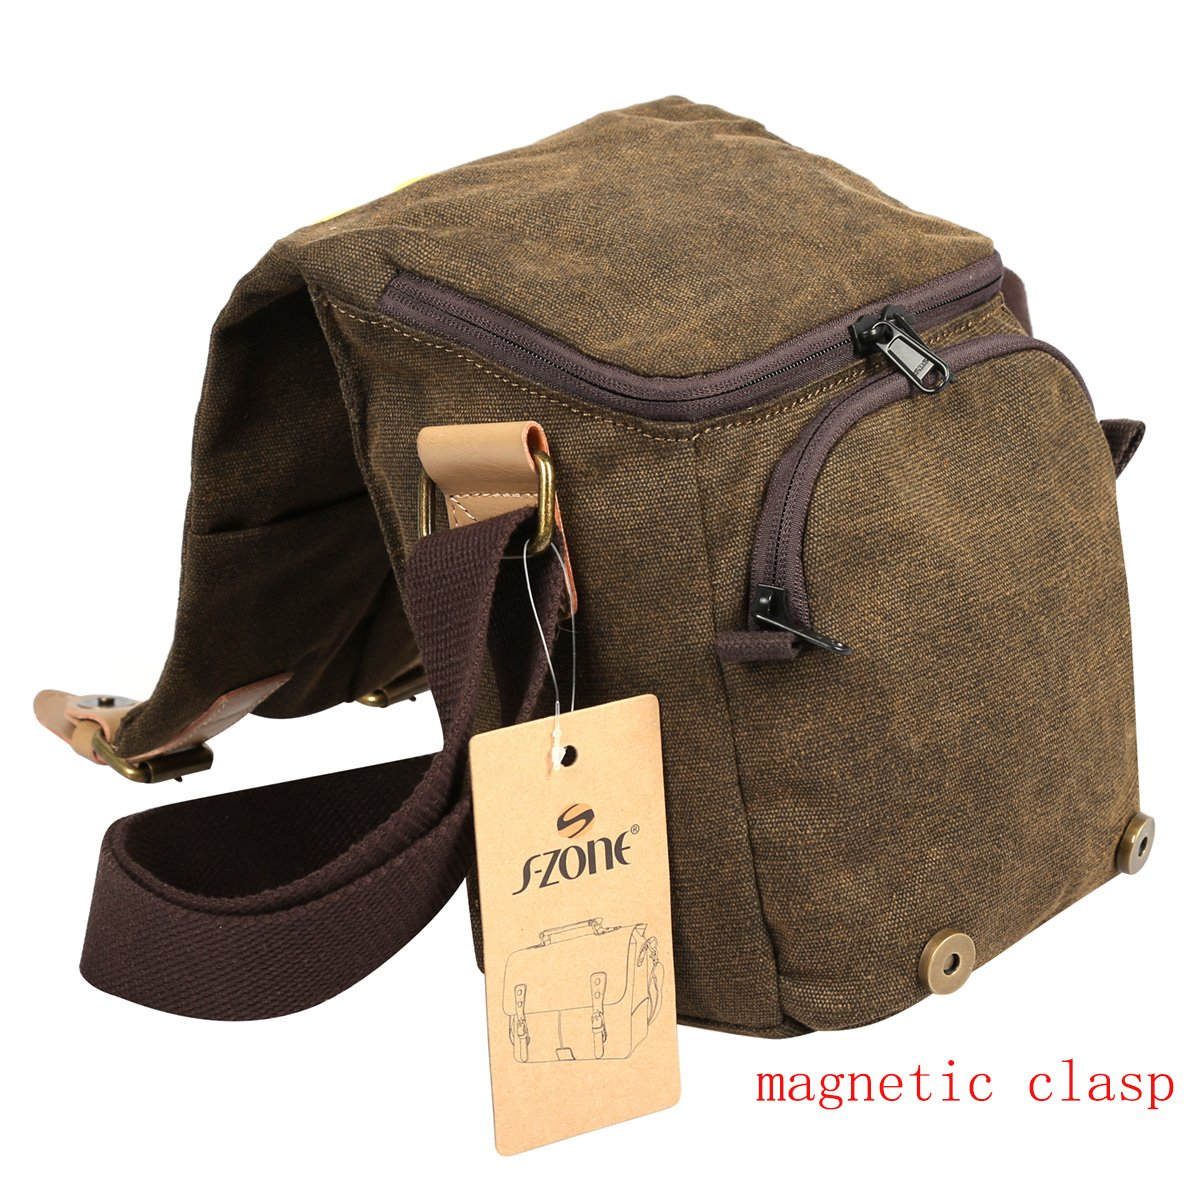 S-ZONE Vintage Waterproof Canvas Leather Trim DSLR SLR Shockproof Camera Shoulder Messenger Bag 3